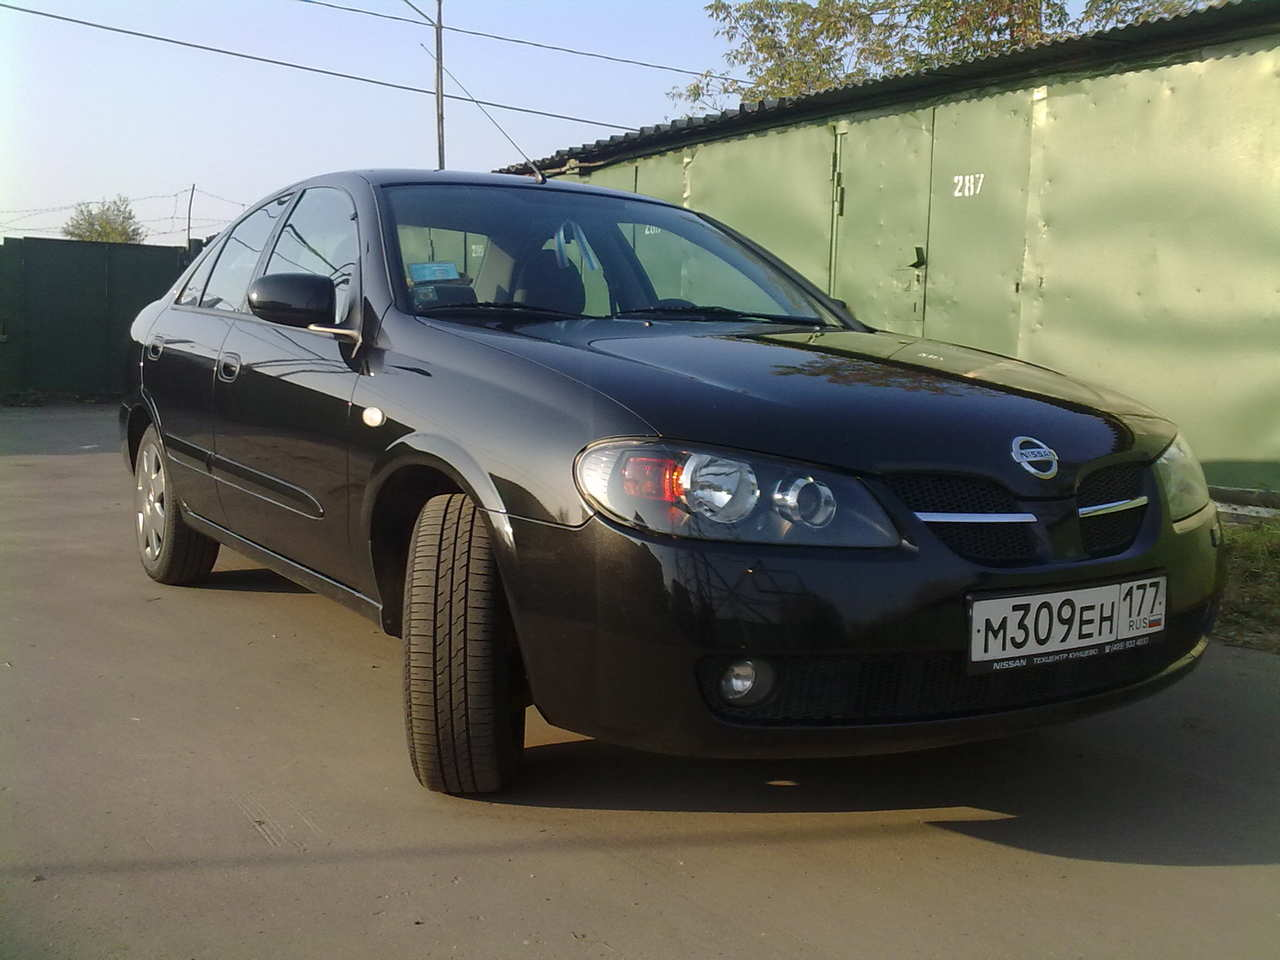 2005 nissan almera photos 1 5 gasoline ff manual for sale. Black Bedroom Furniture Sets. Home Design Ideas